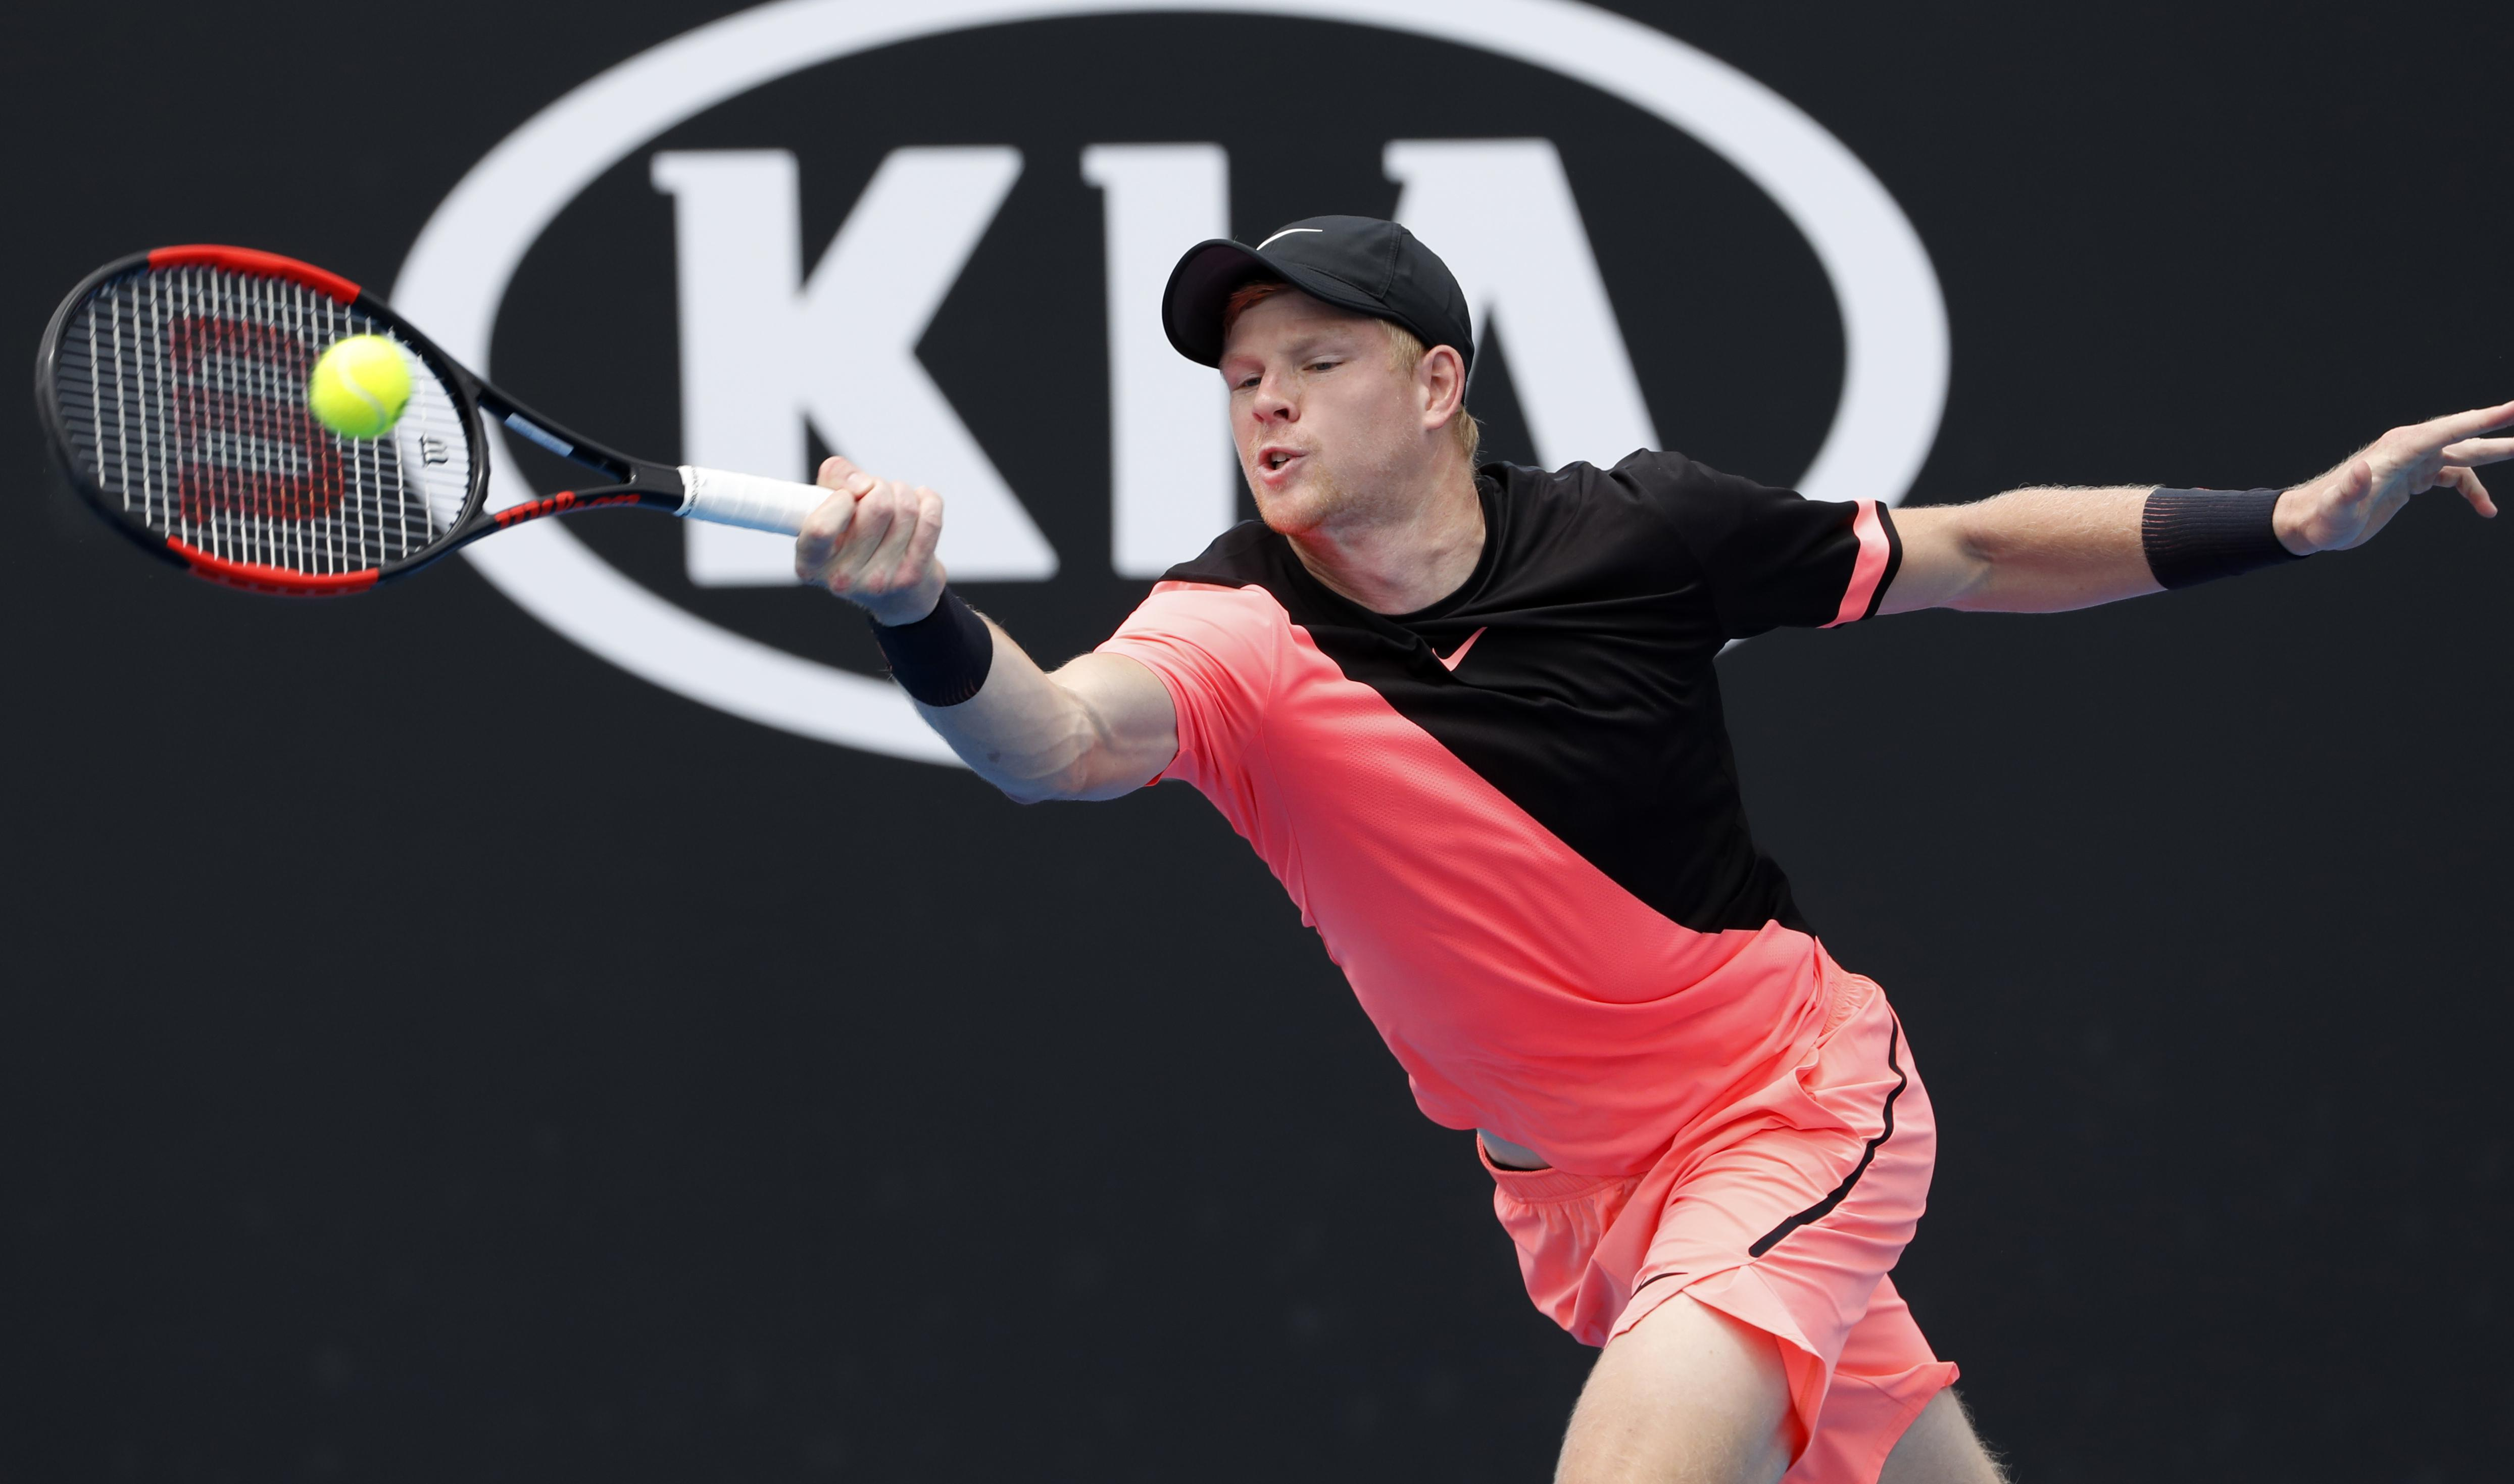 Edmund has stretched himself to go where only five other British men have been since 1968